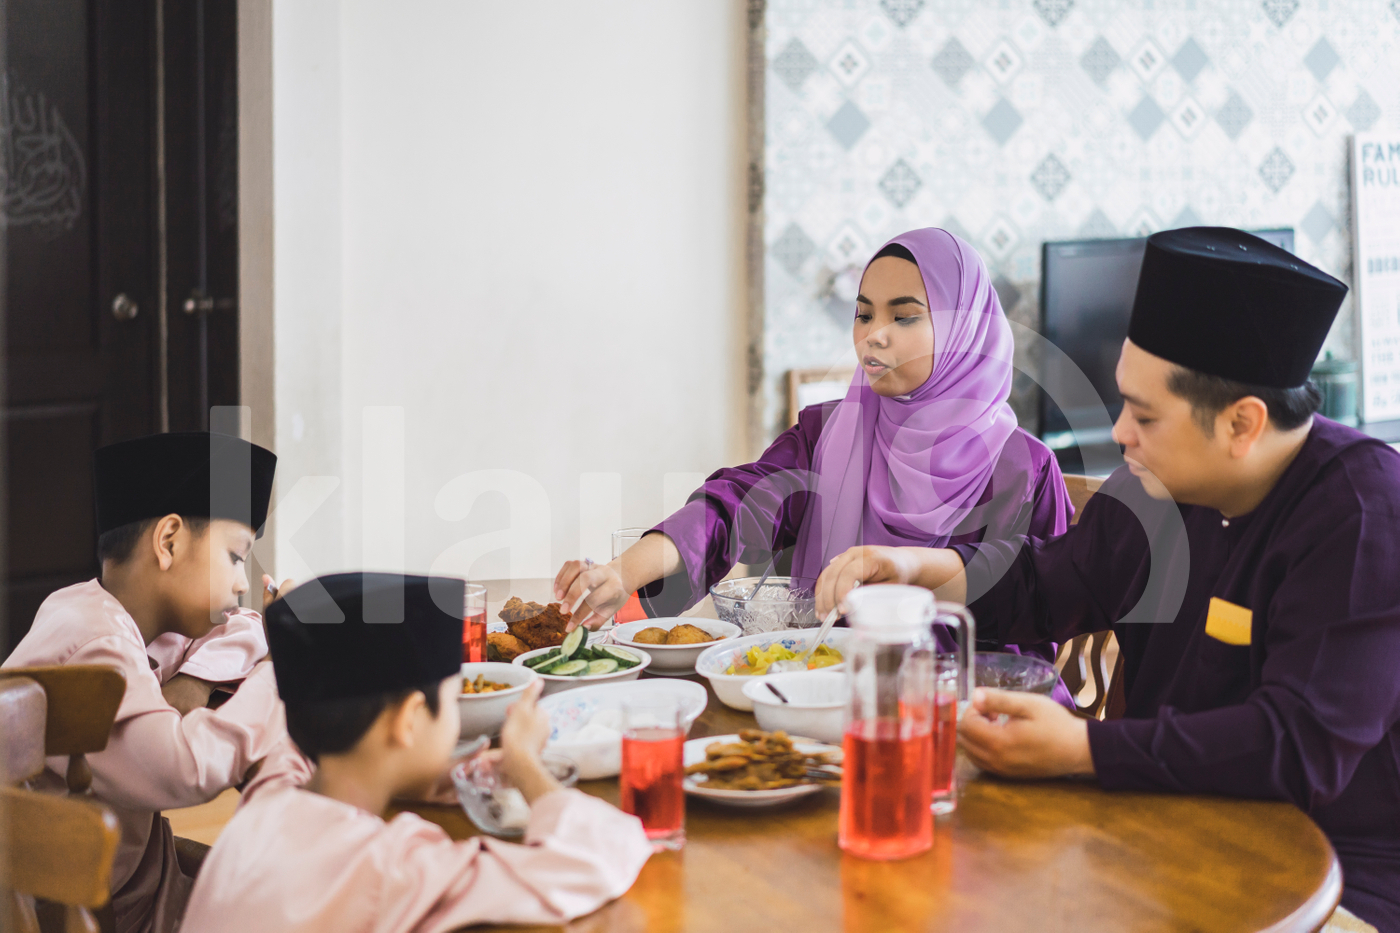 Muslim Family having food at home